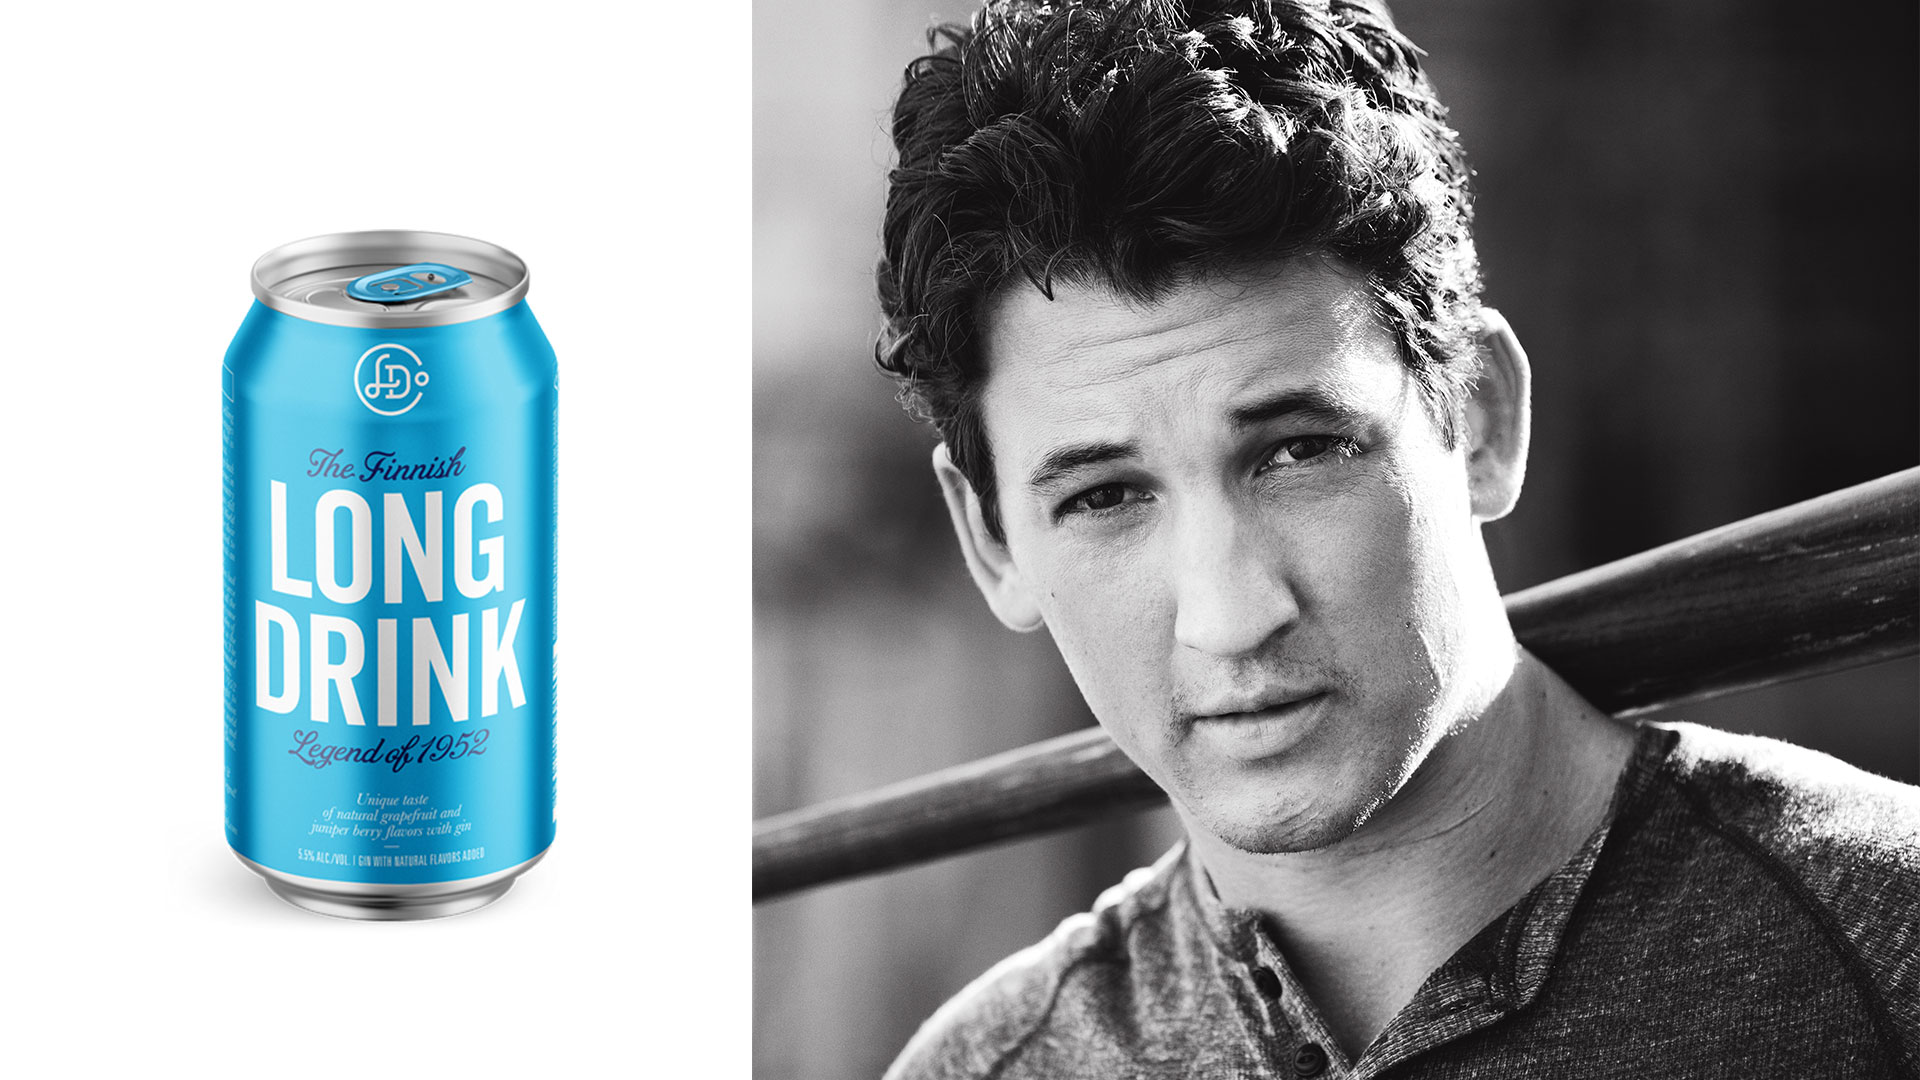 Miles Teller Becomes Co-owner of Long Drink, a Finnish-Inspired Booze Brand